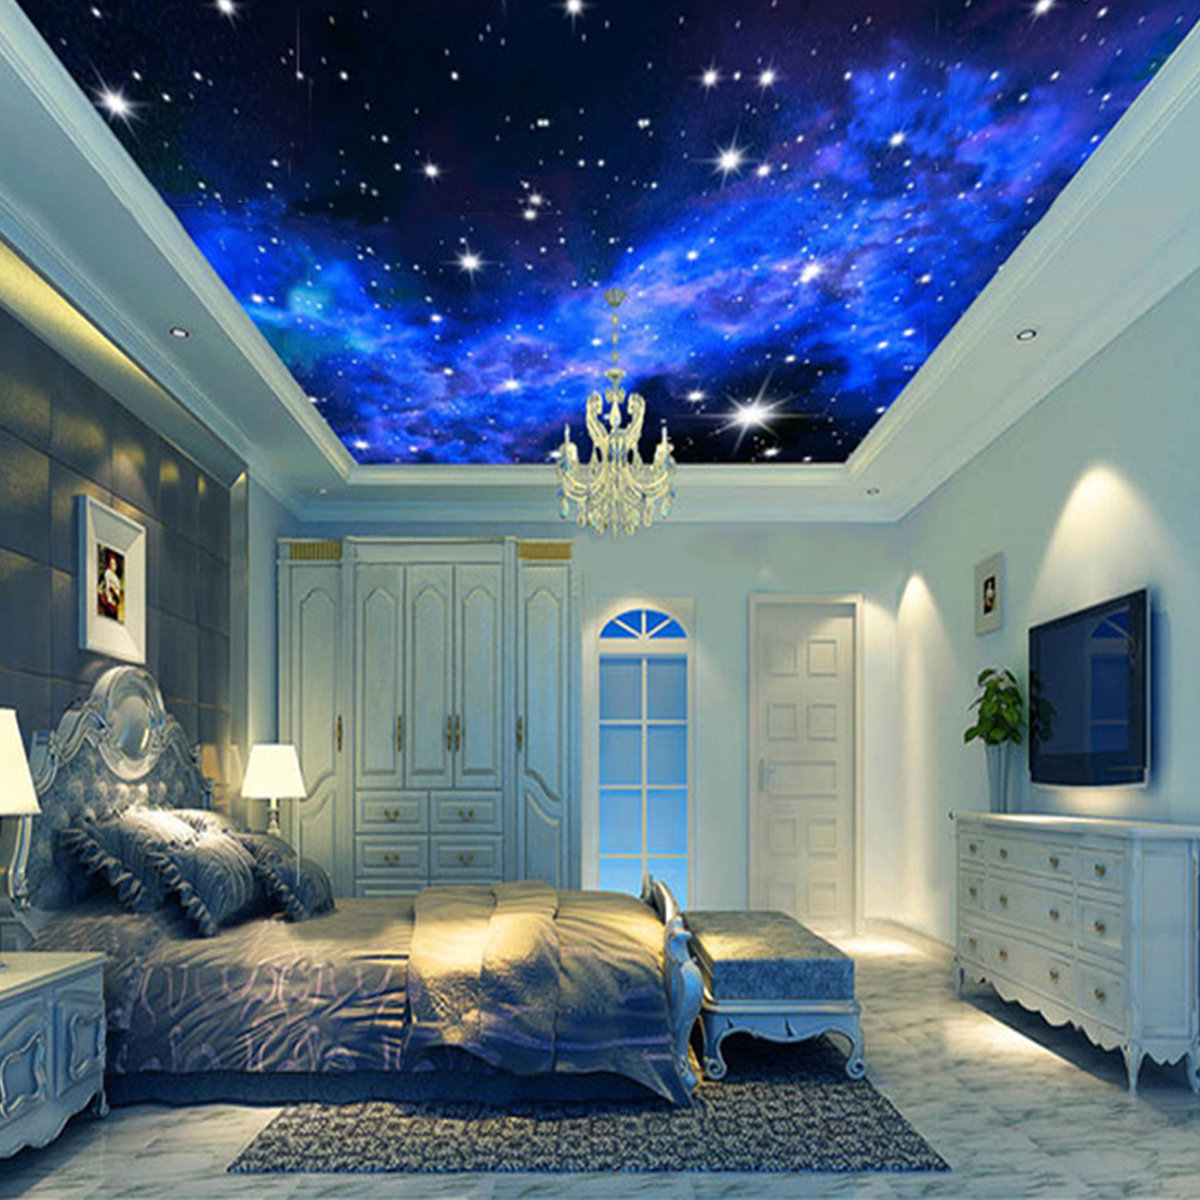 3d wallpaper mural night clouds star sky wall paper for 3d wallpaper ideas